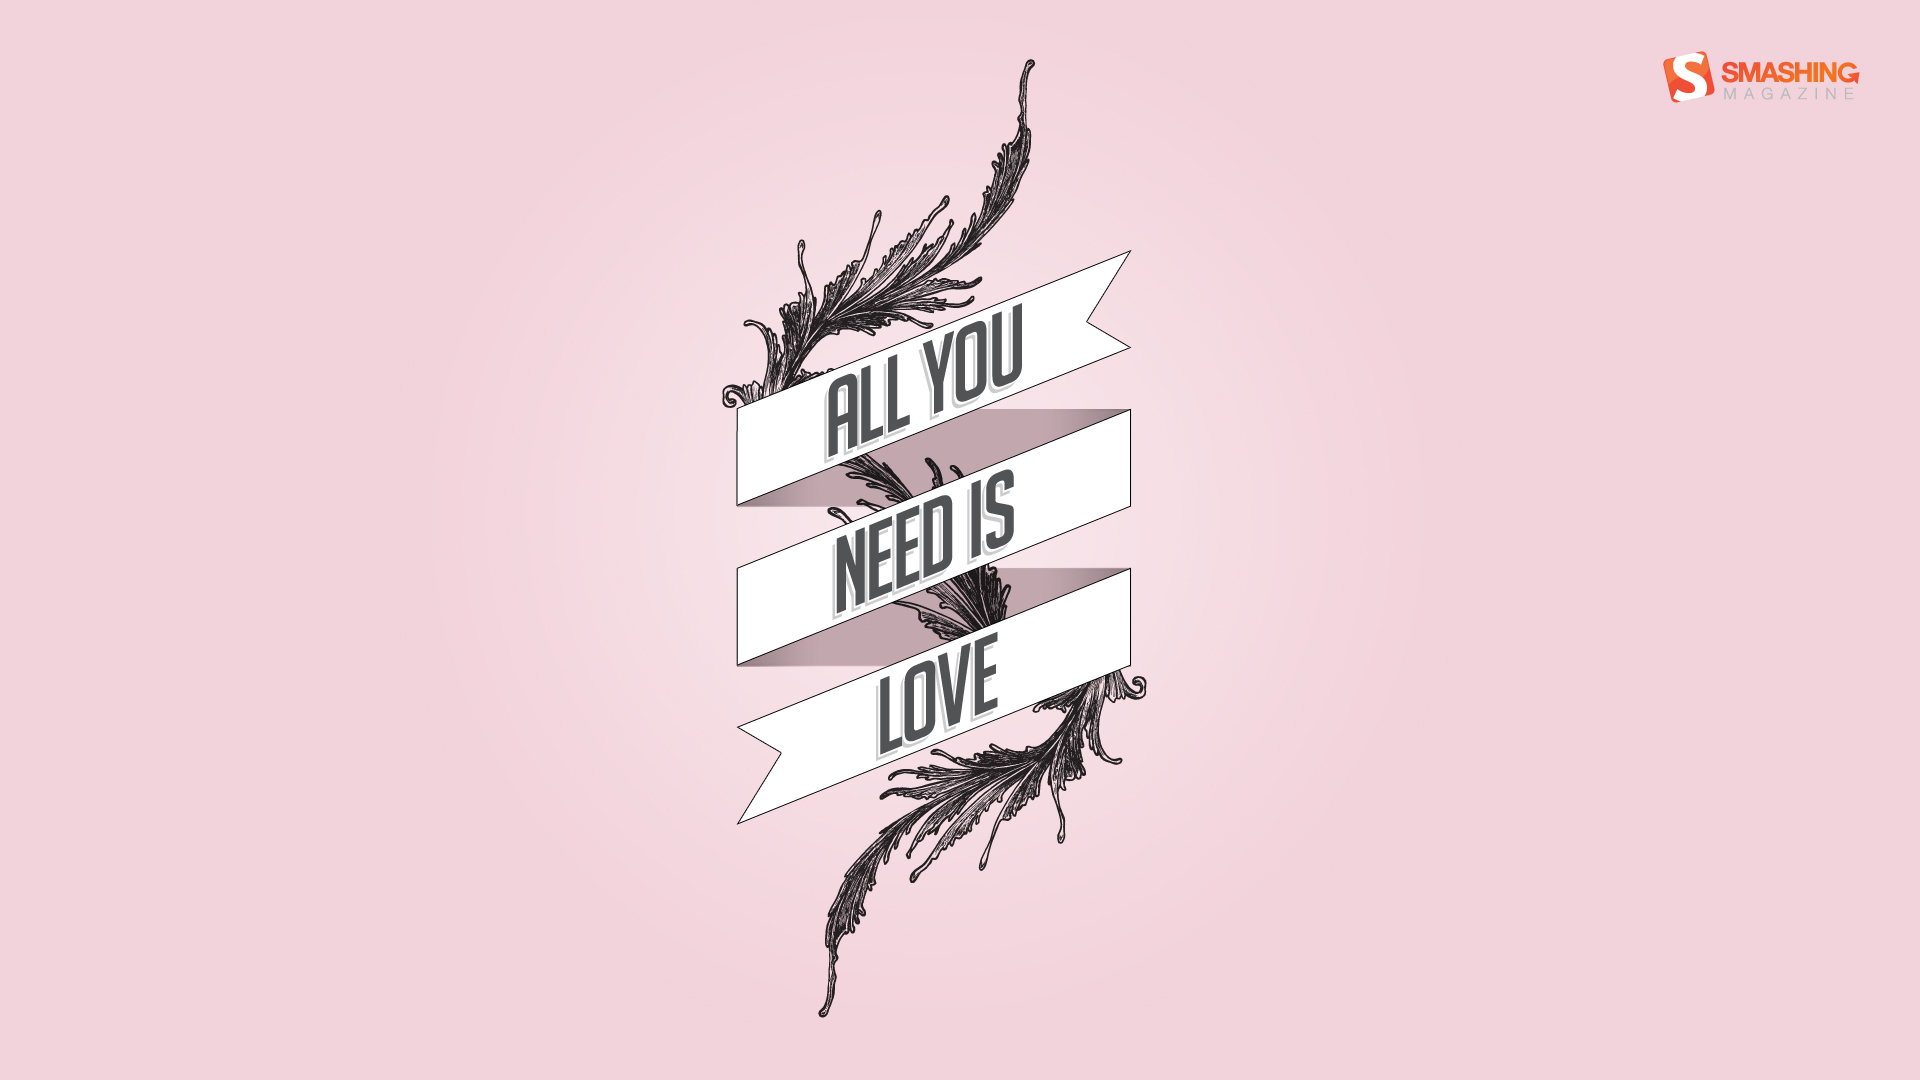 Hd wallpaper you need - Hd Wallpaper You Need All You Need Is Love Wallpapers And Stock Photos Download